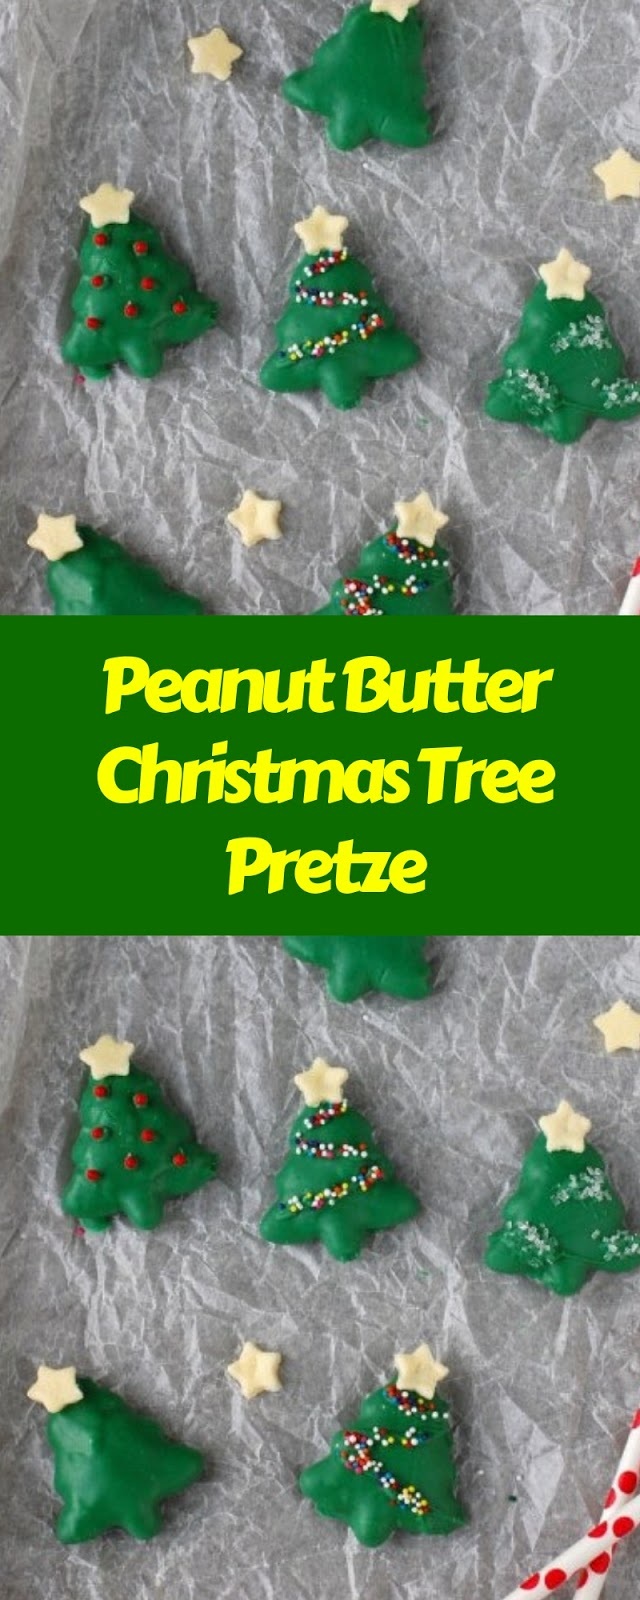 Easy Peanut Butter Christmas Tree Pretze Recipes